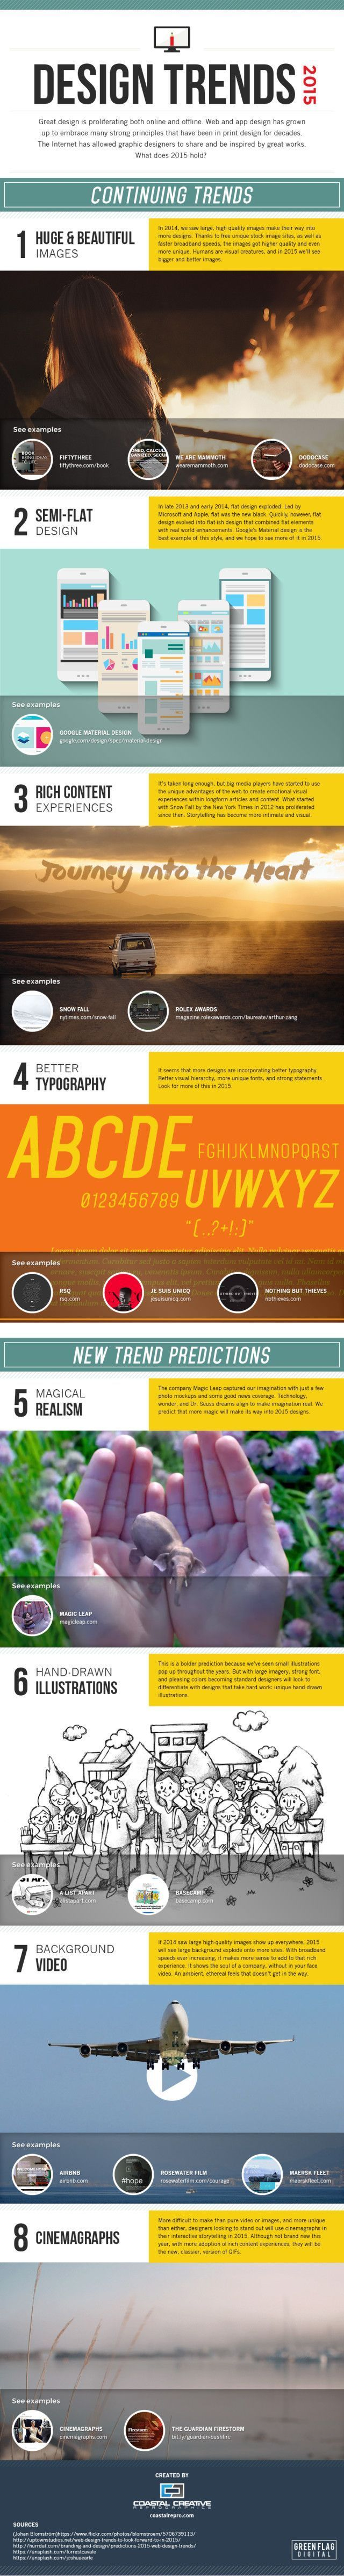 2015 Web Design Trends #infographics #webdesign #graphicdesign http://fleetheratrace.blogspot.co.uk/2015/04/web-design-tips.html #website #design tips and tricks #infographic